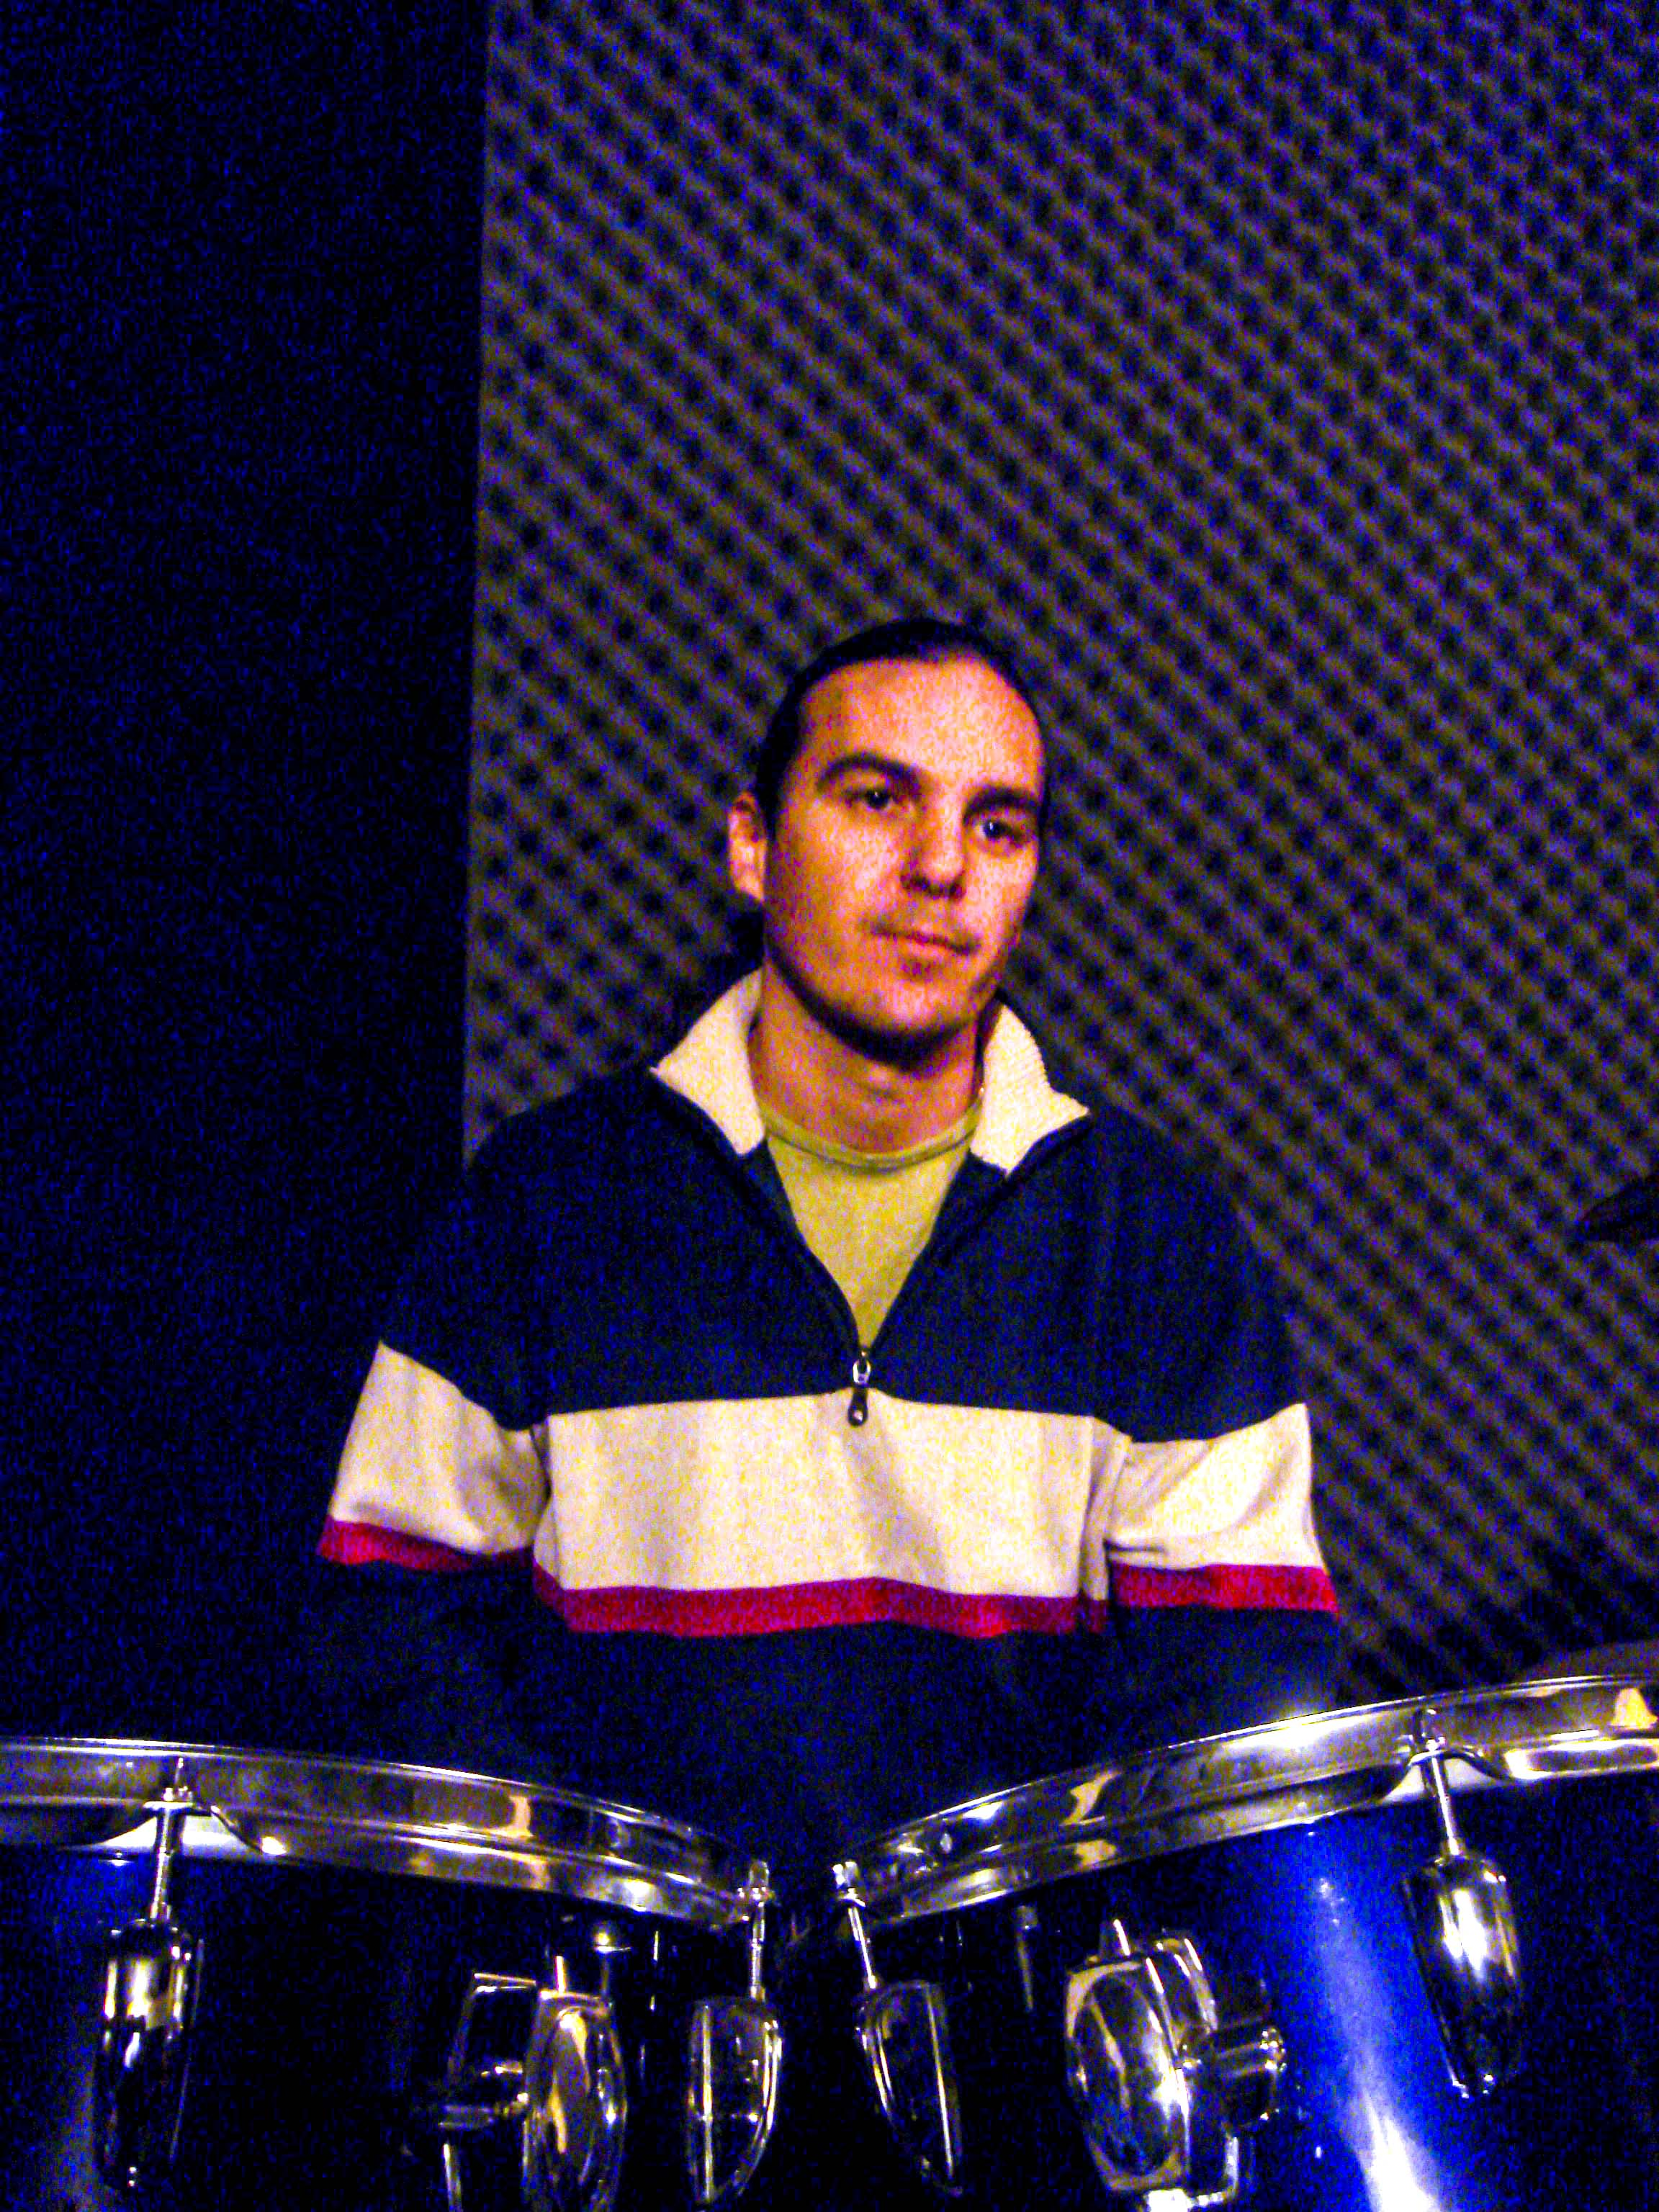 Alex Garcia On Drums